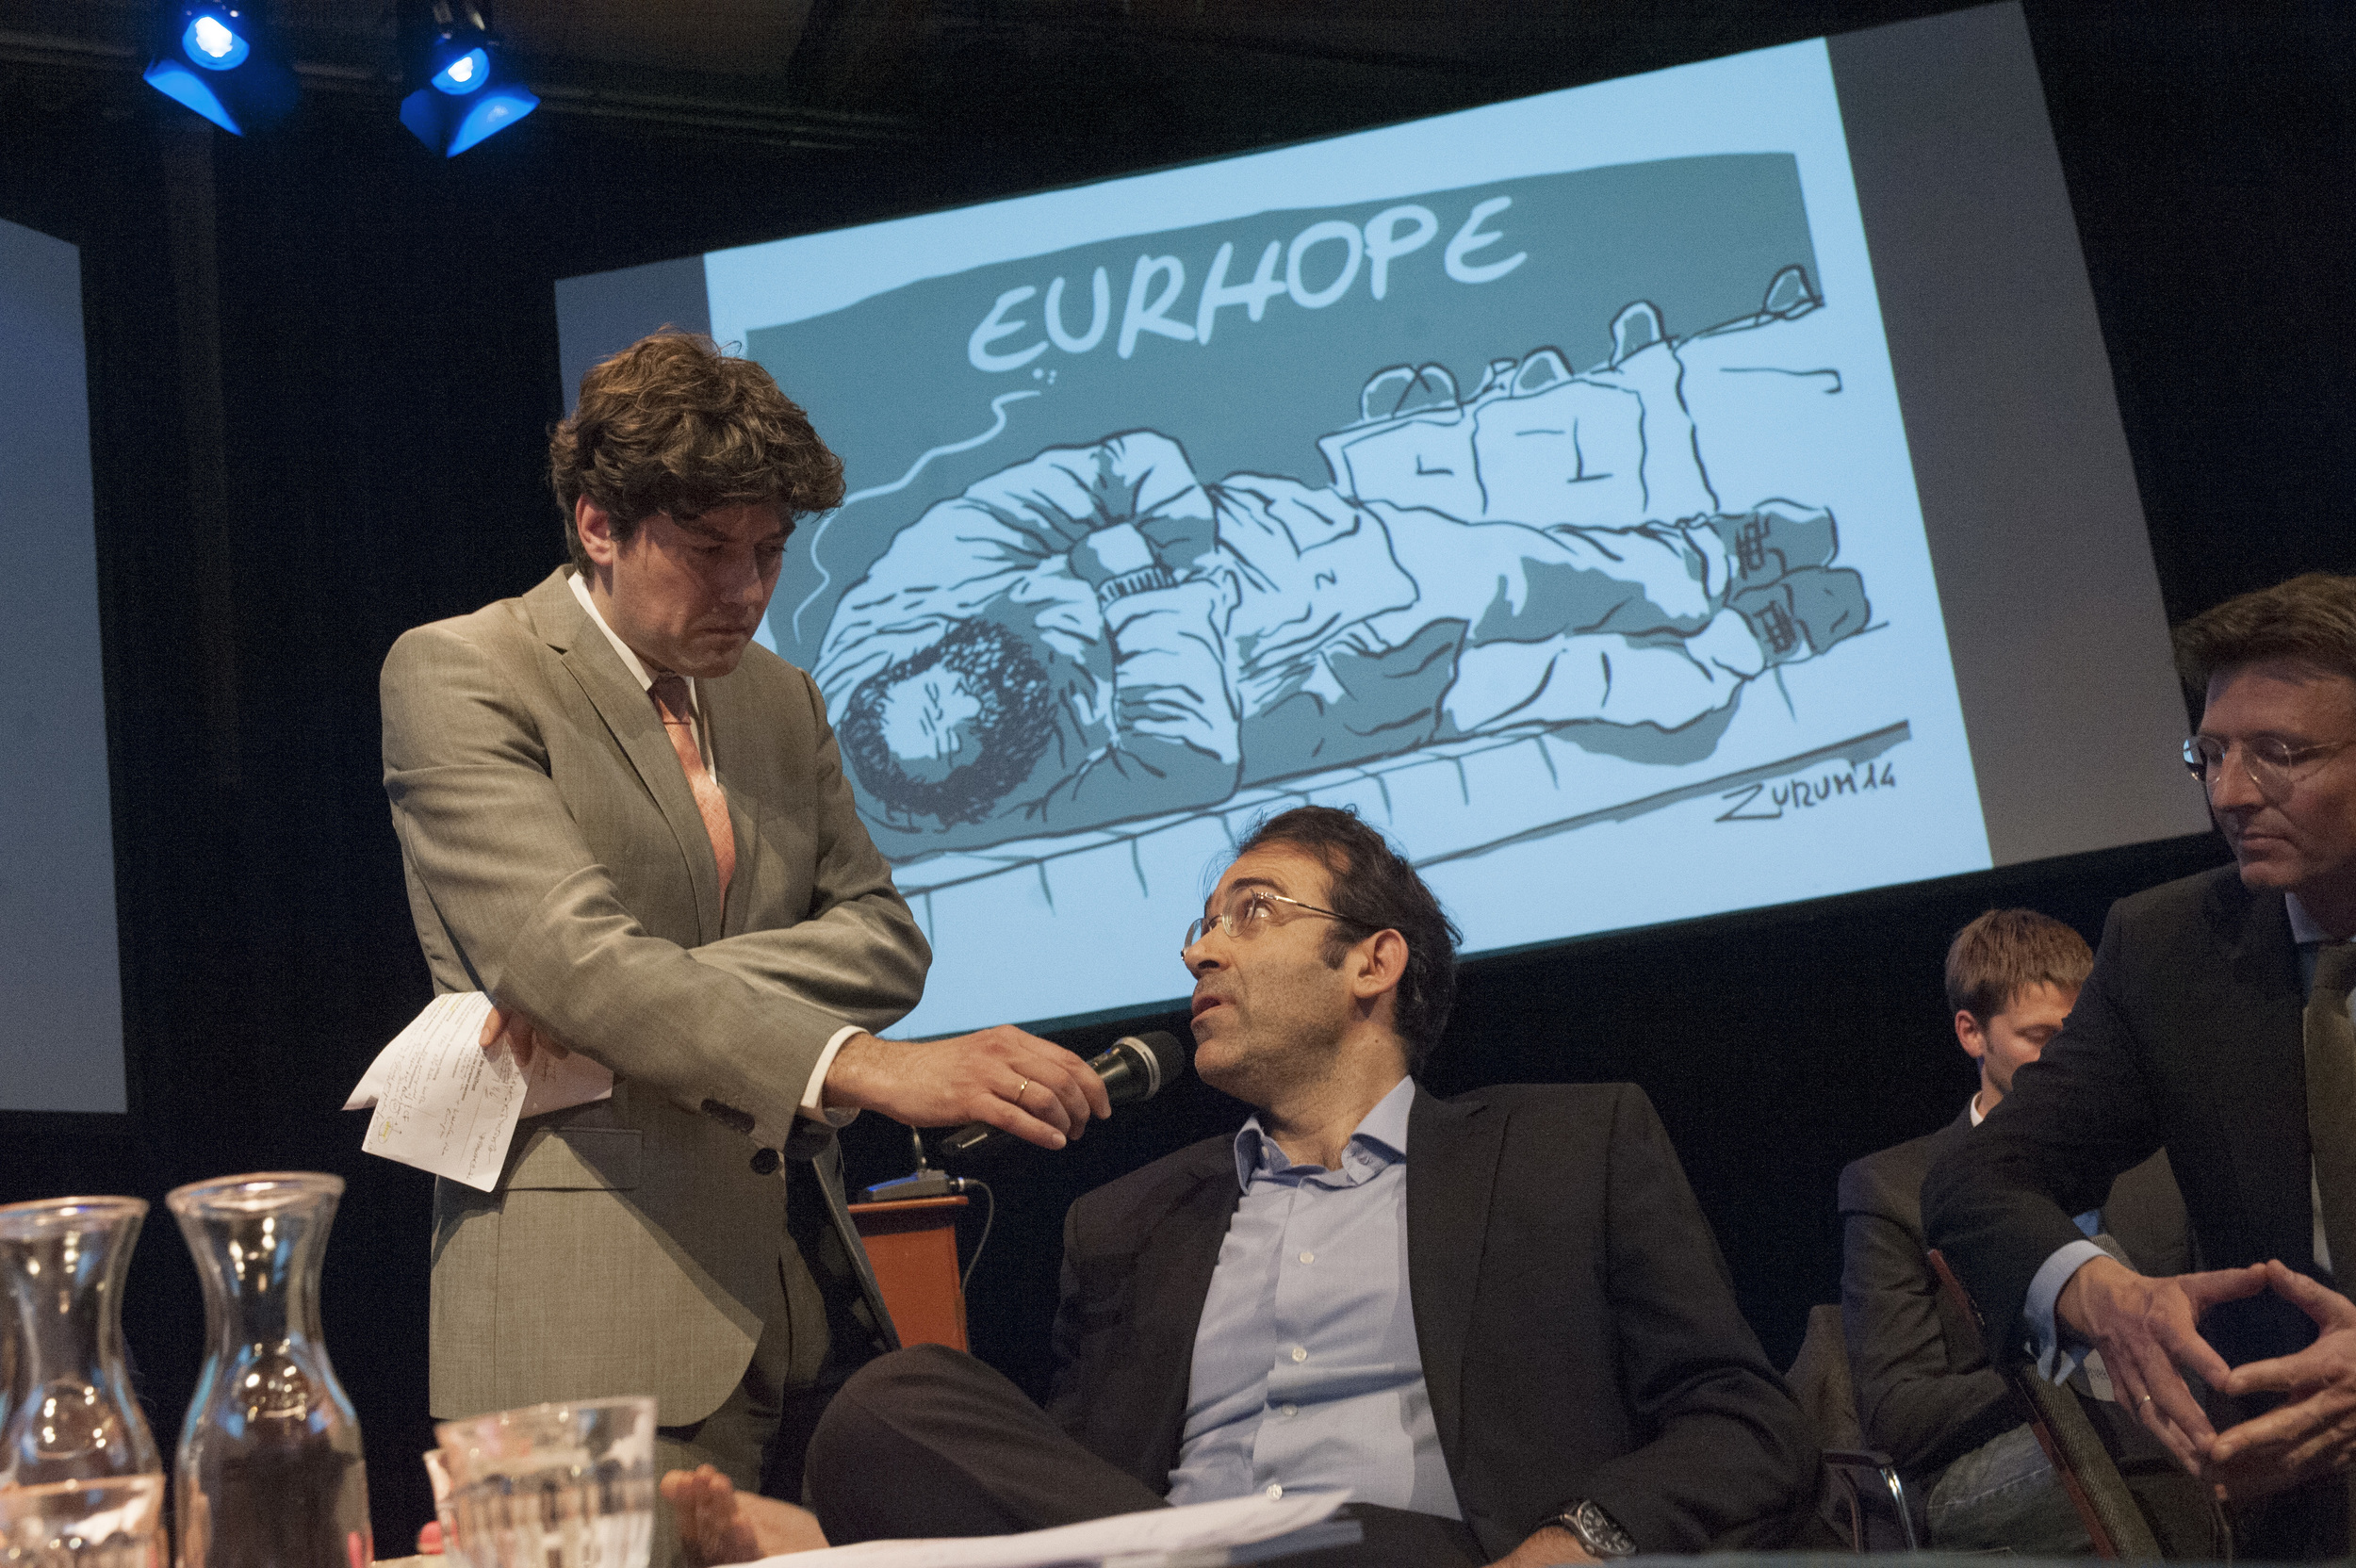 Lennart Booij, George Pagoulatos and the cartoon  EuroHope by Zurum in the background.©Jan Boeve